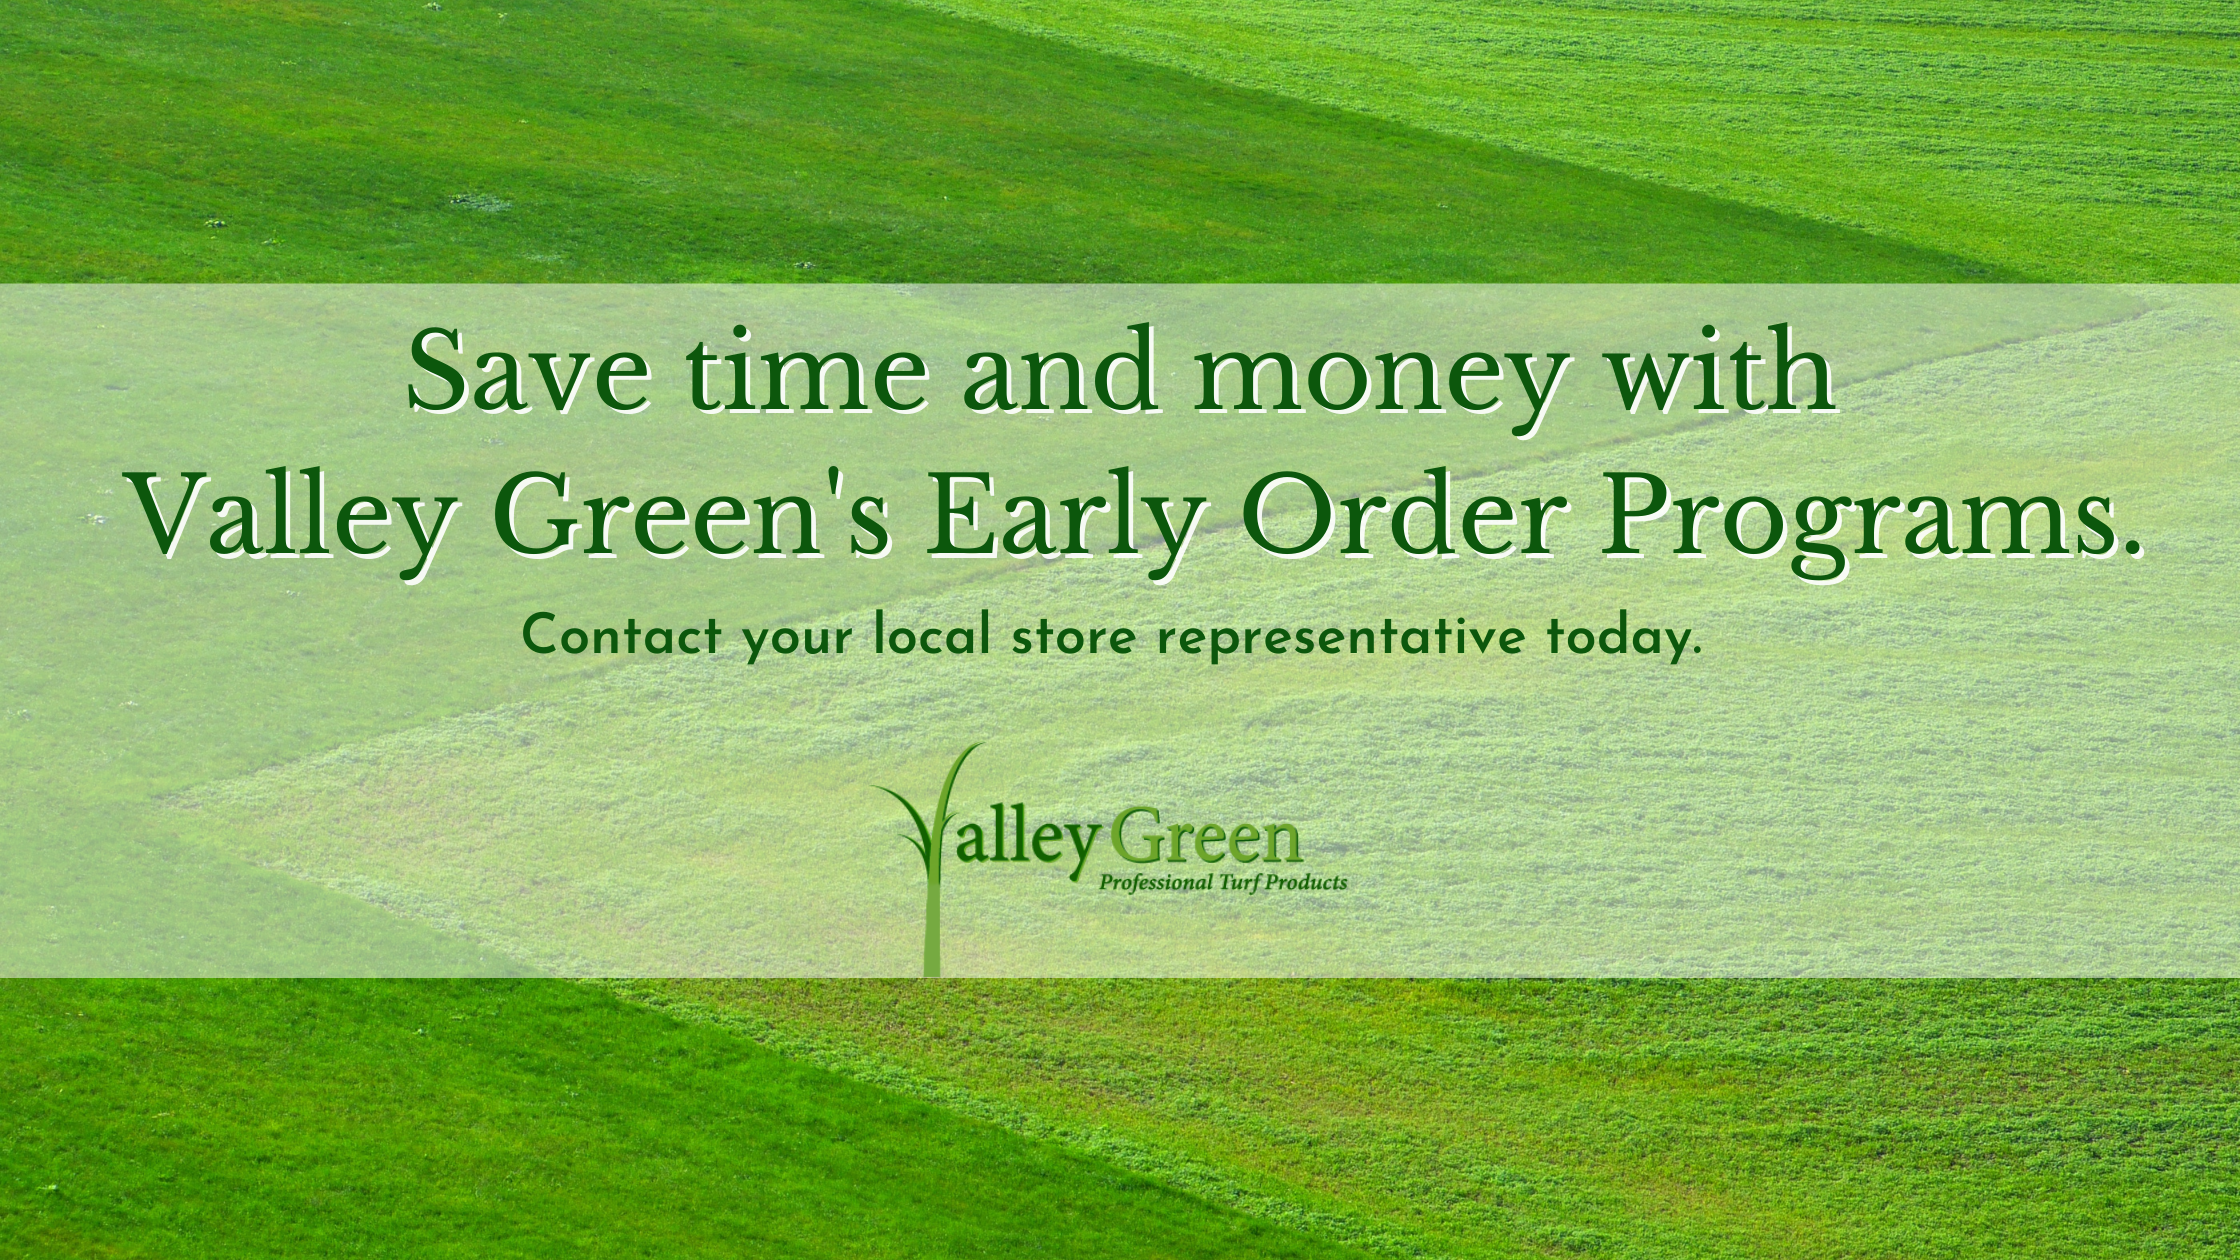 Landscape Product Early Order Programs